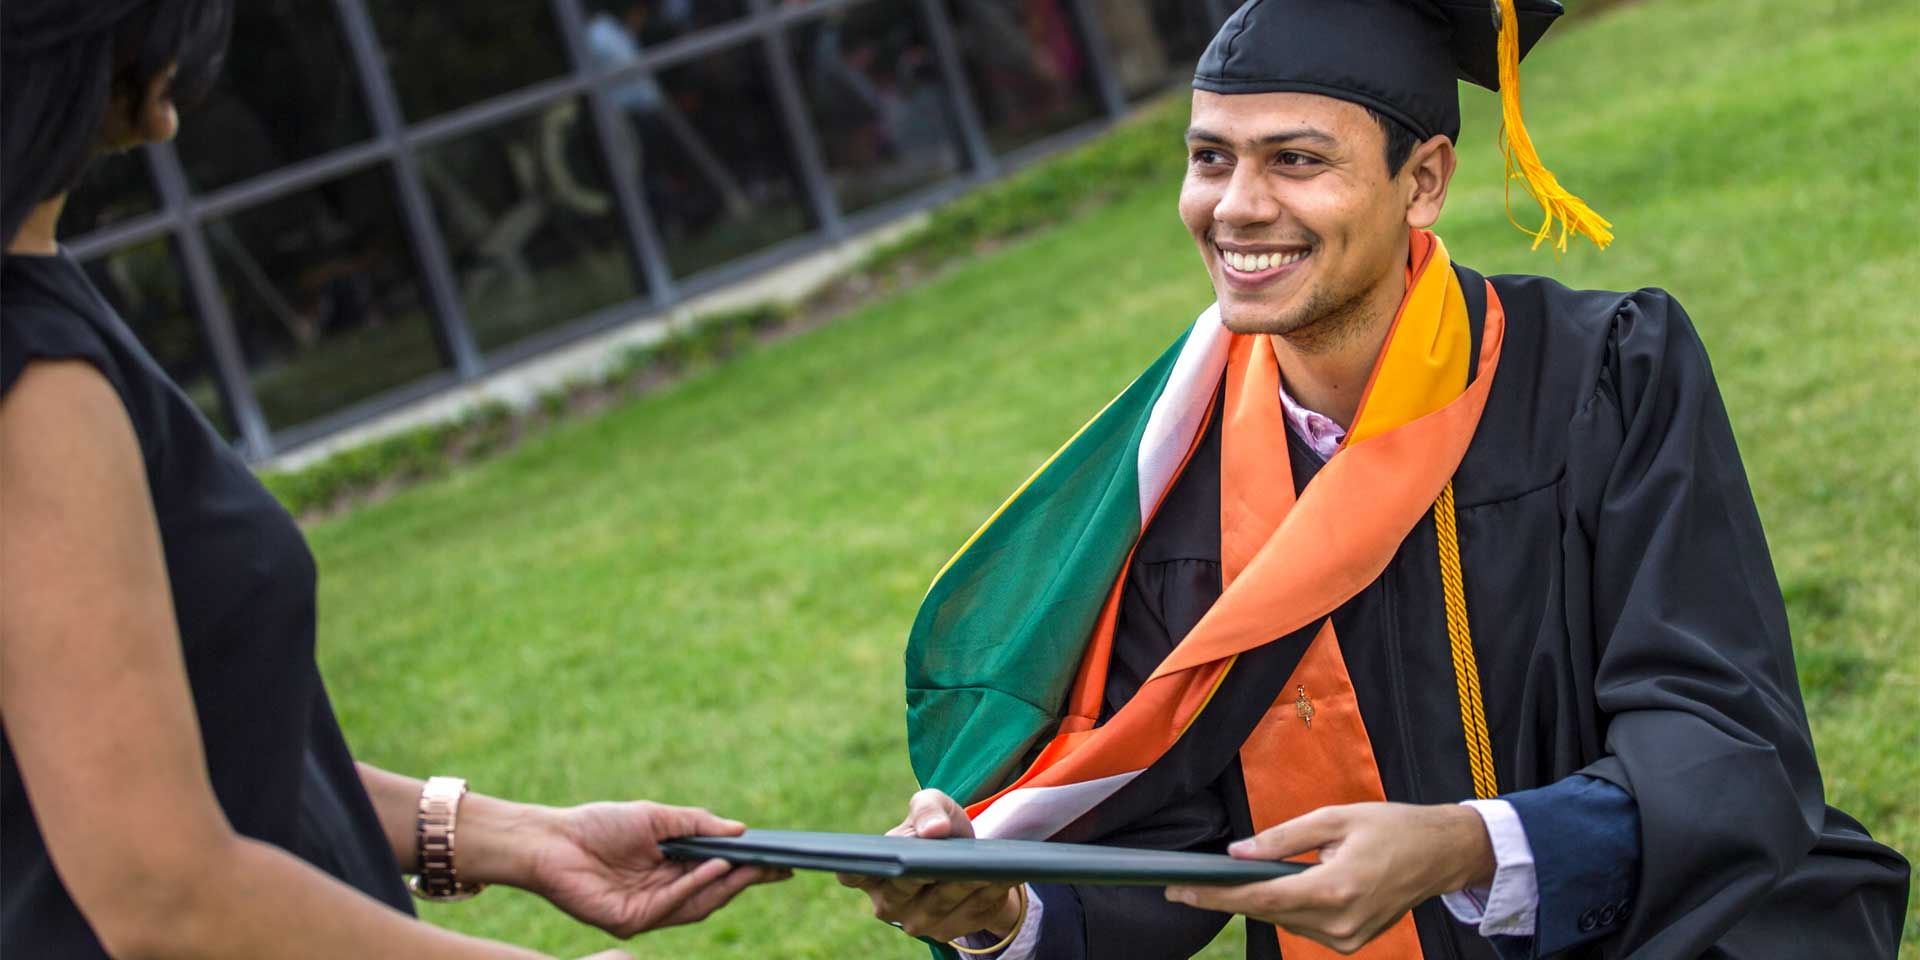 Master Of Science In Information Technology And Management Information Systems Programs